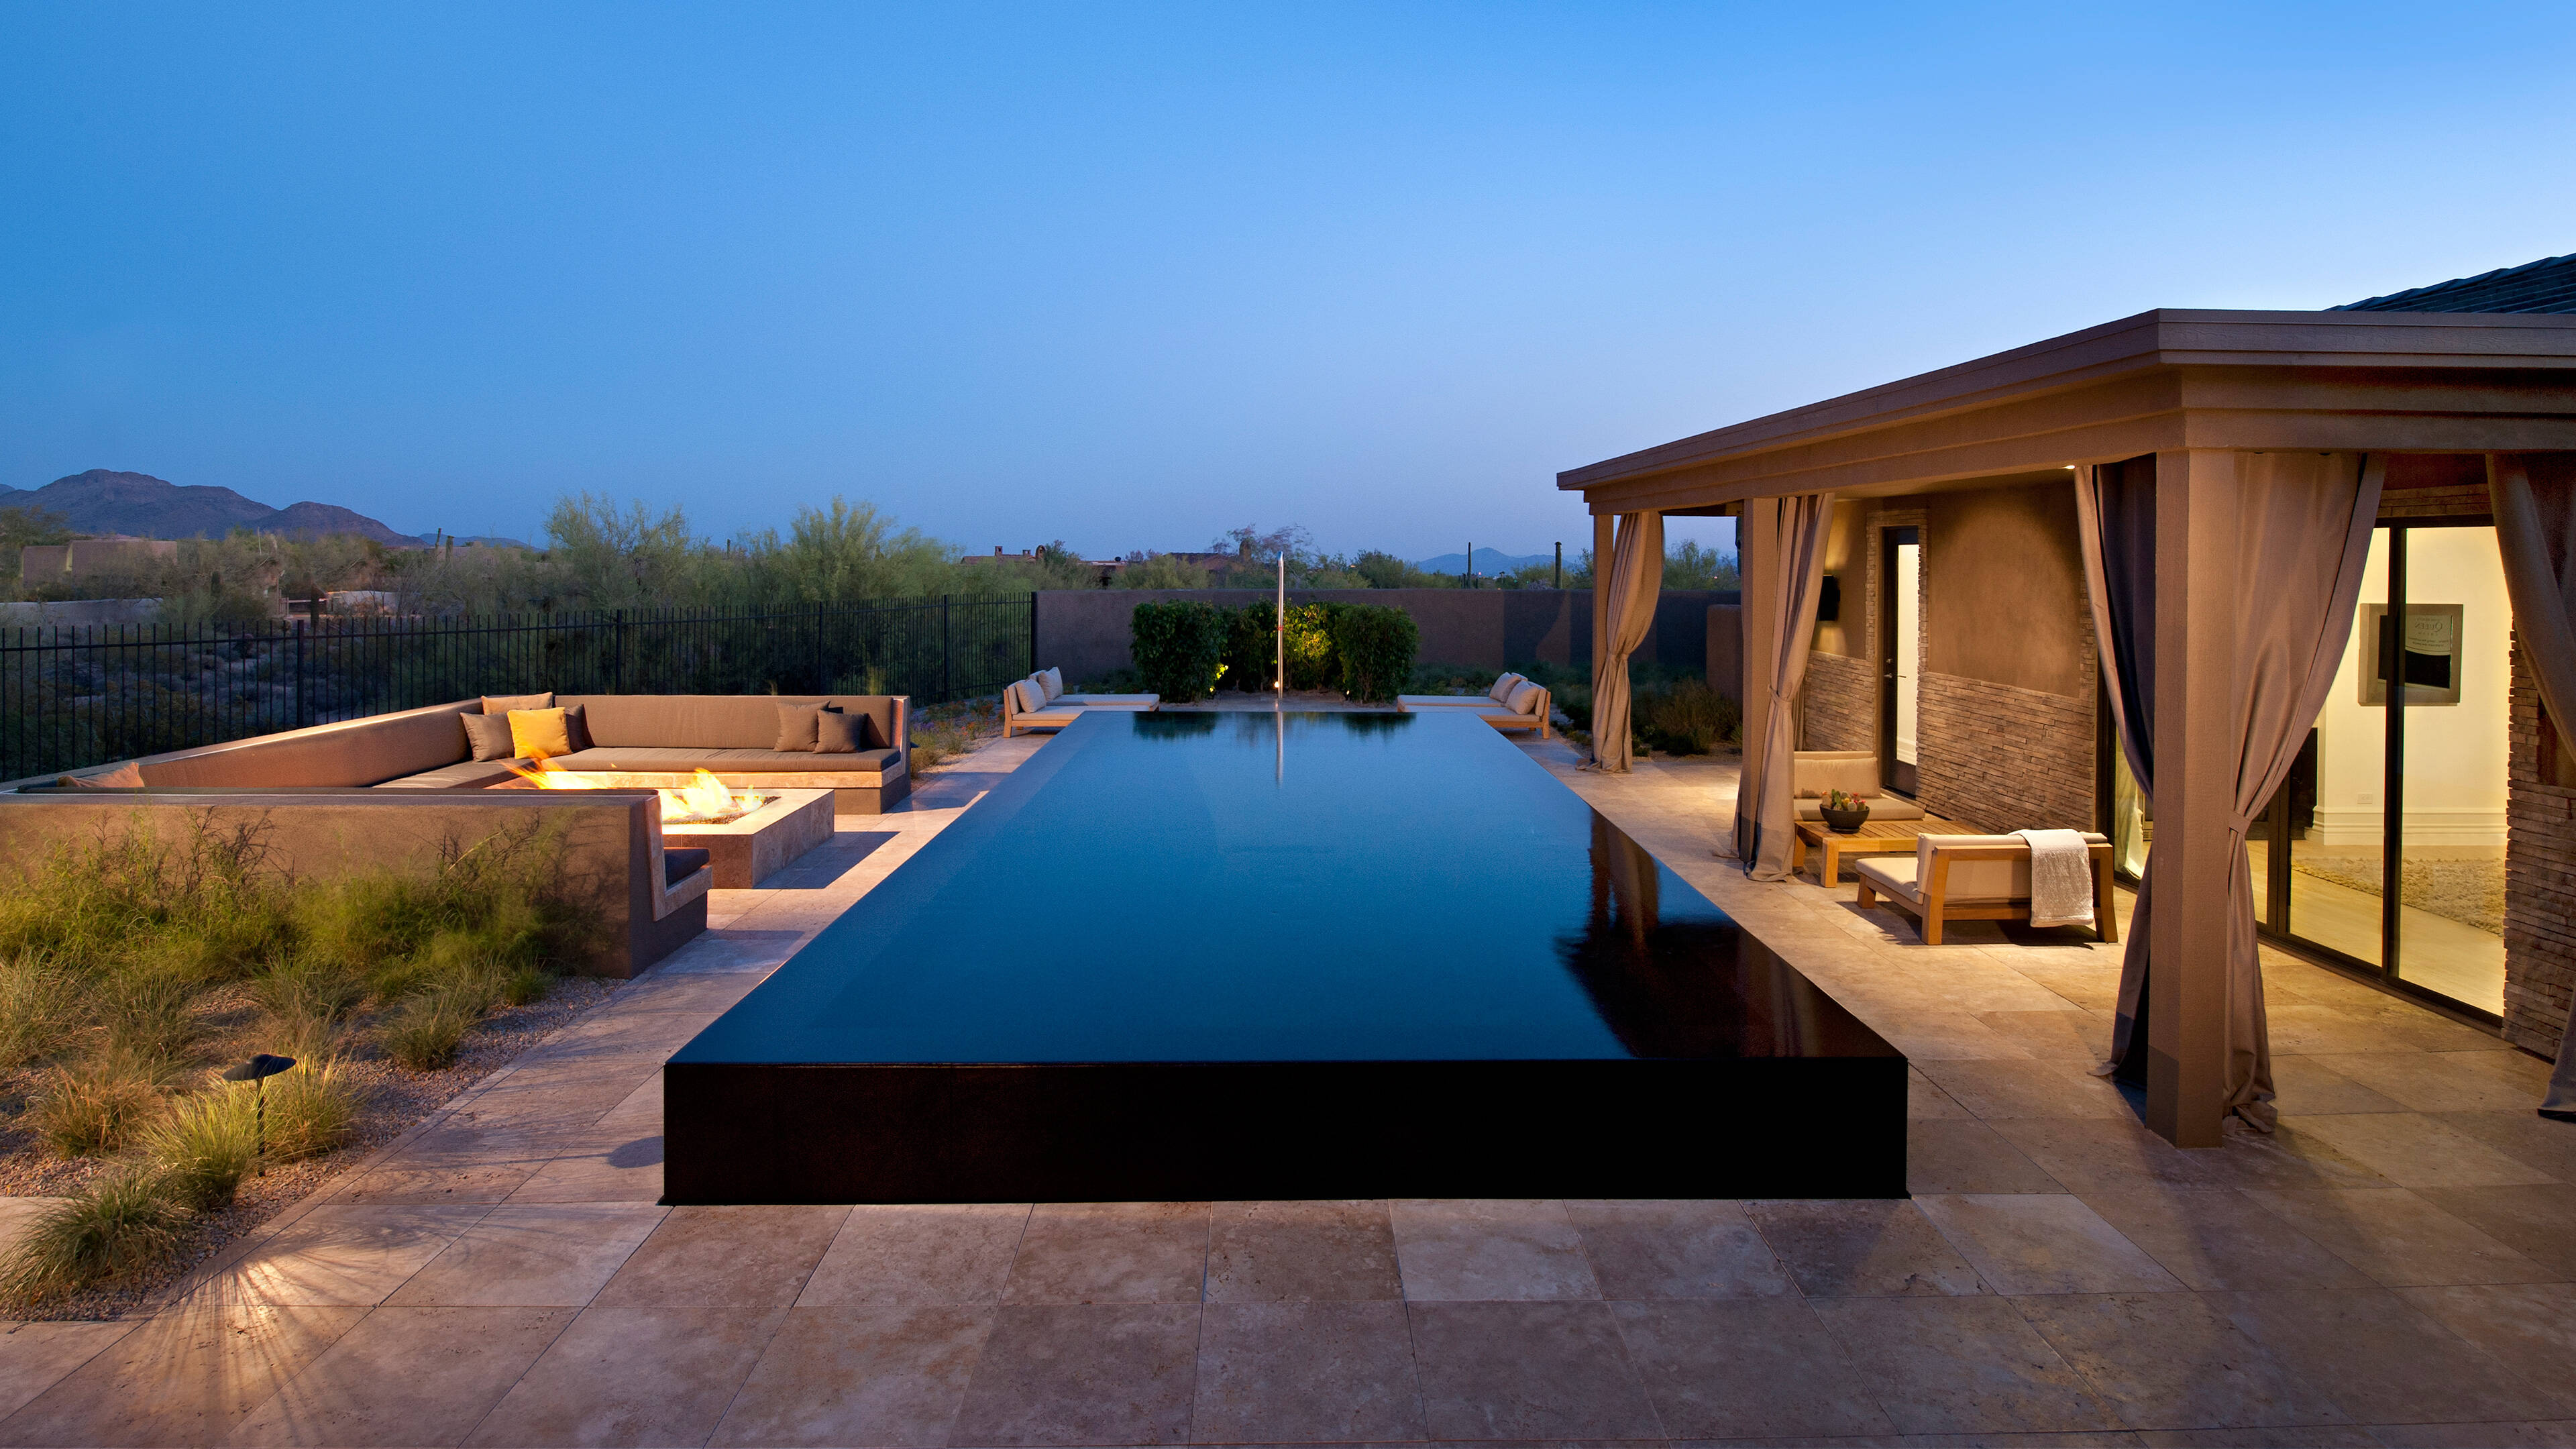 Pulte homes design center scottsdale az - Home design